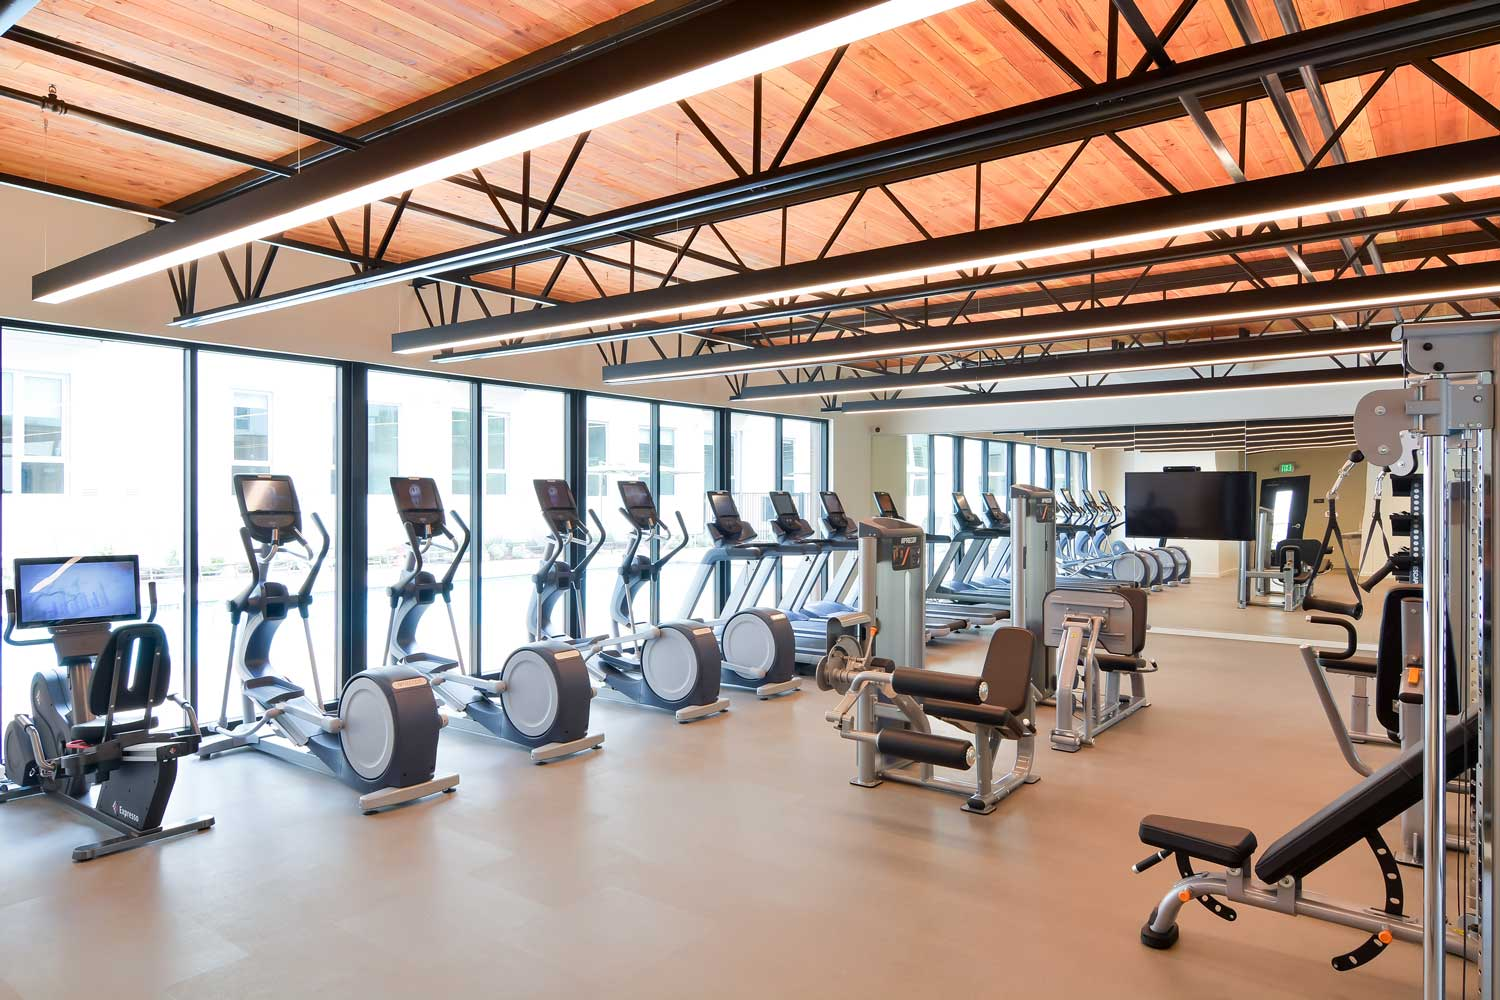 Union City California Apartments - The Union Flats Fitness Center